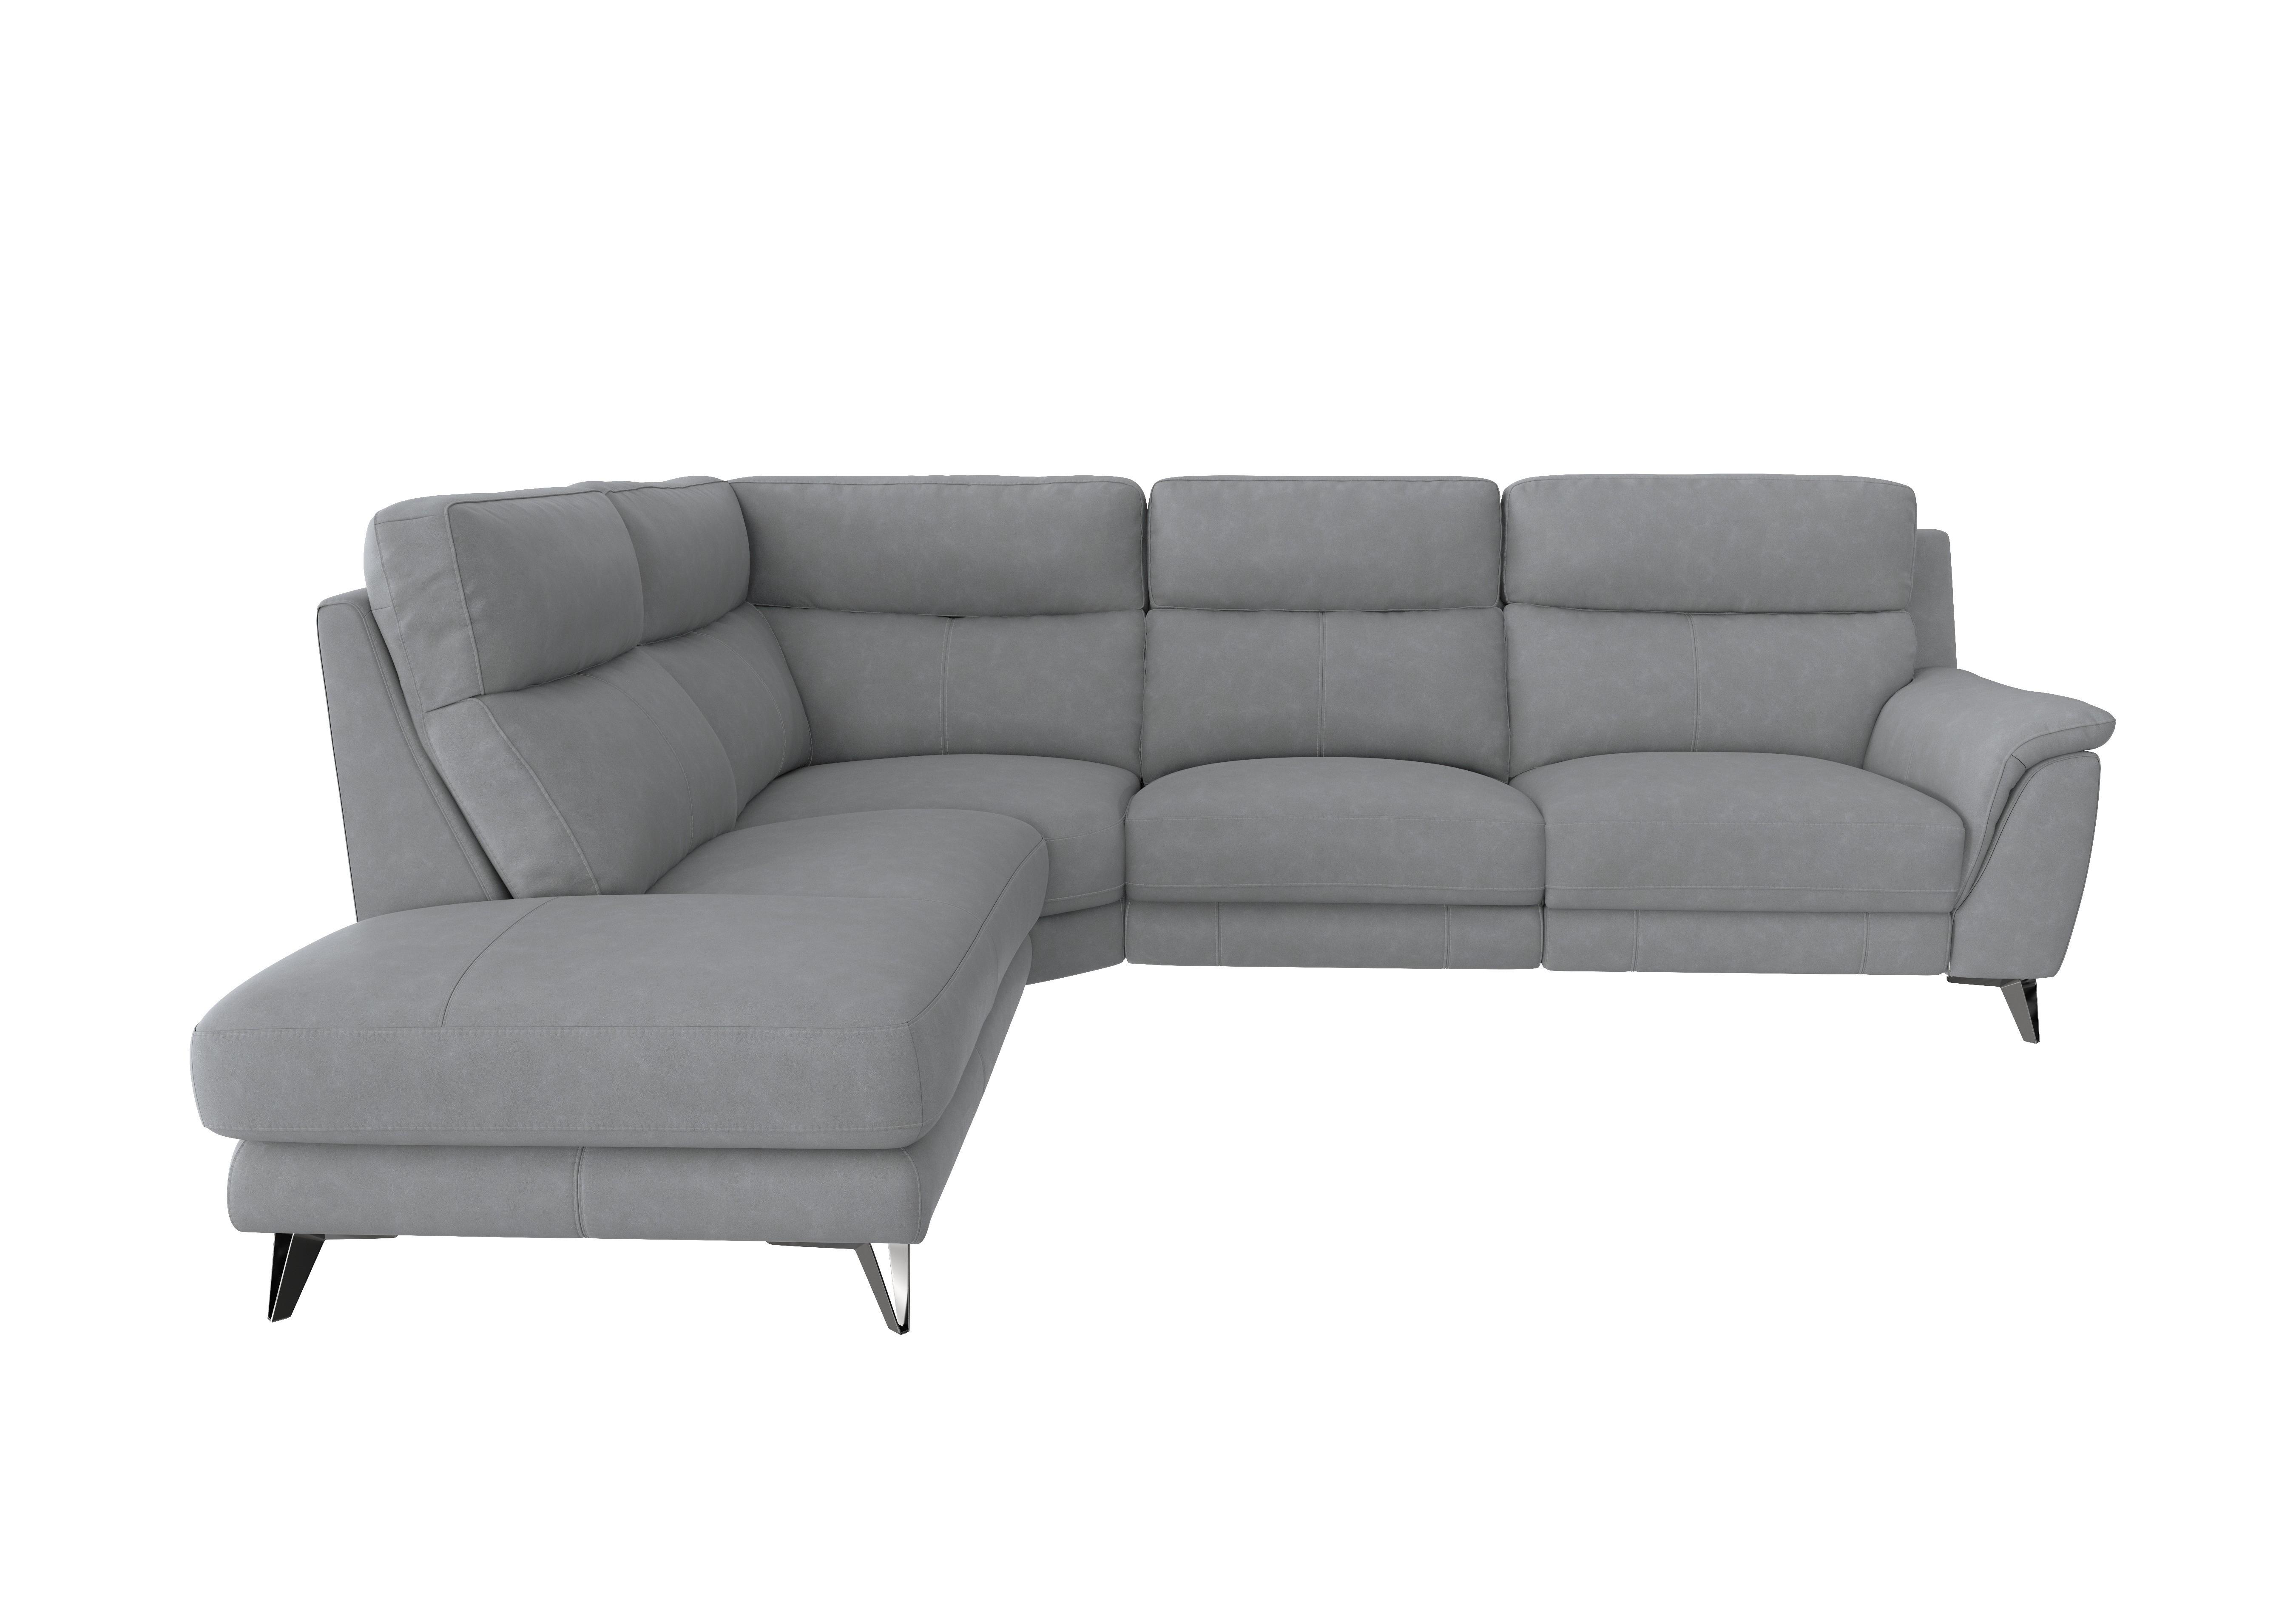 Picture of: Contempo 3 Seater Chaise End Fabric Power Recliner Sofa Furniture Village